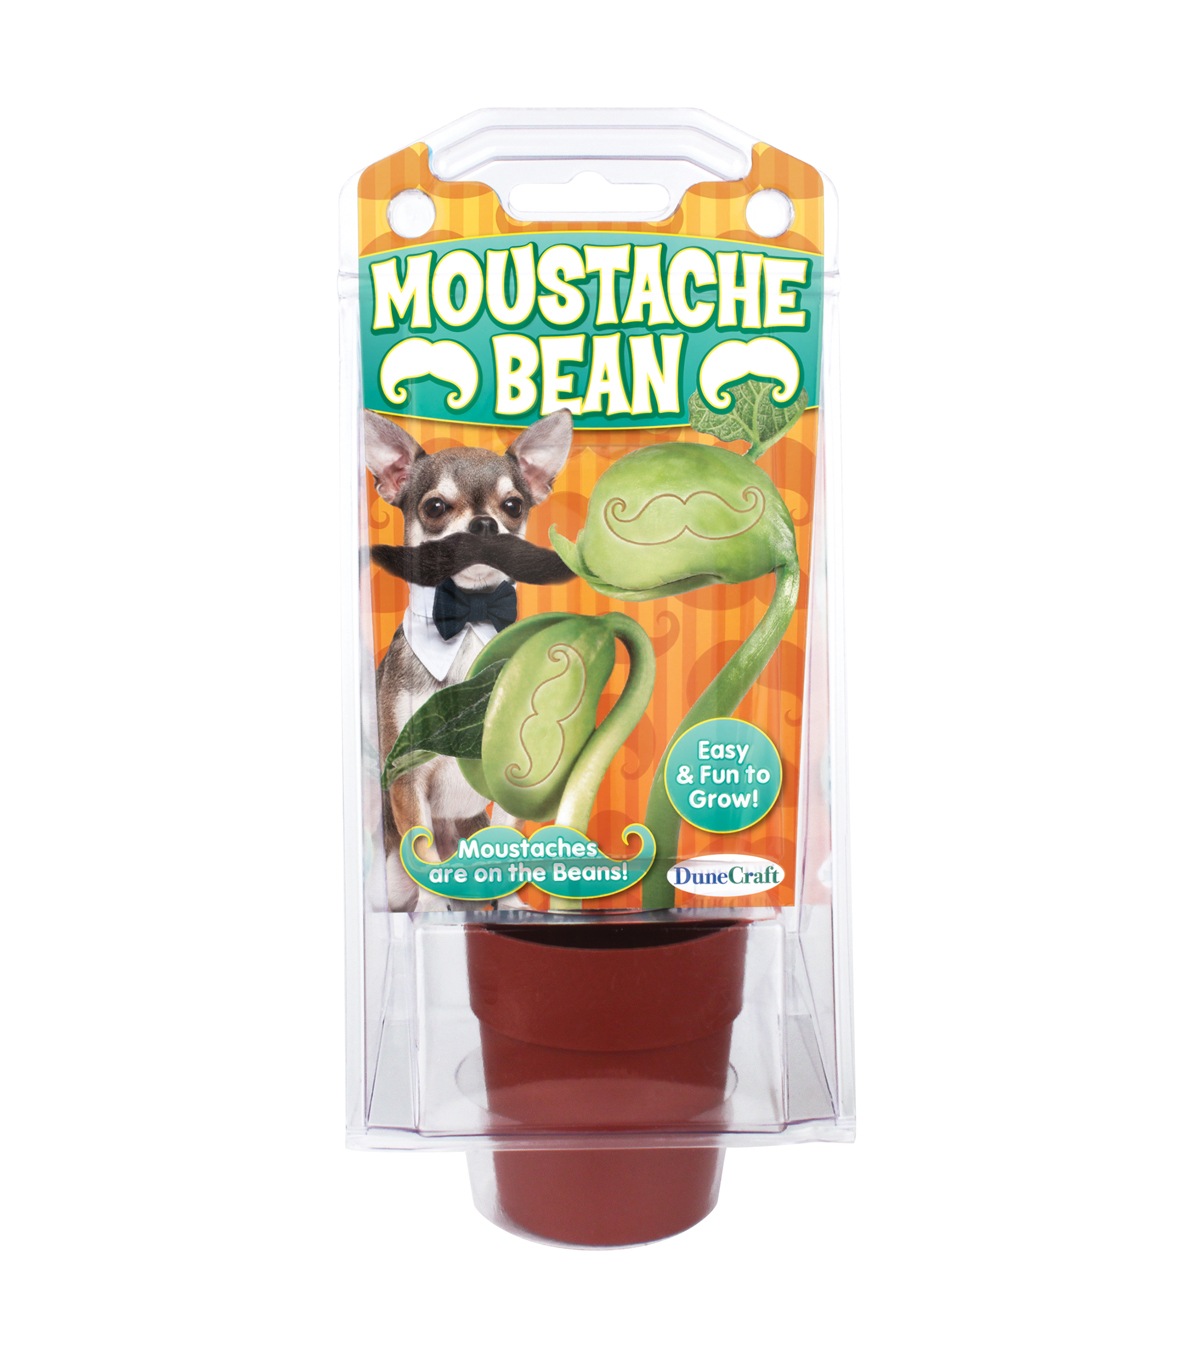 Moustache Bean Message Bean